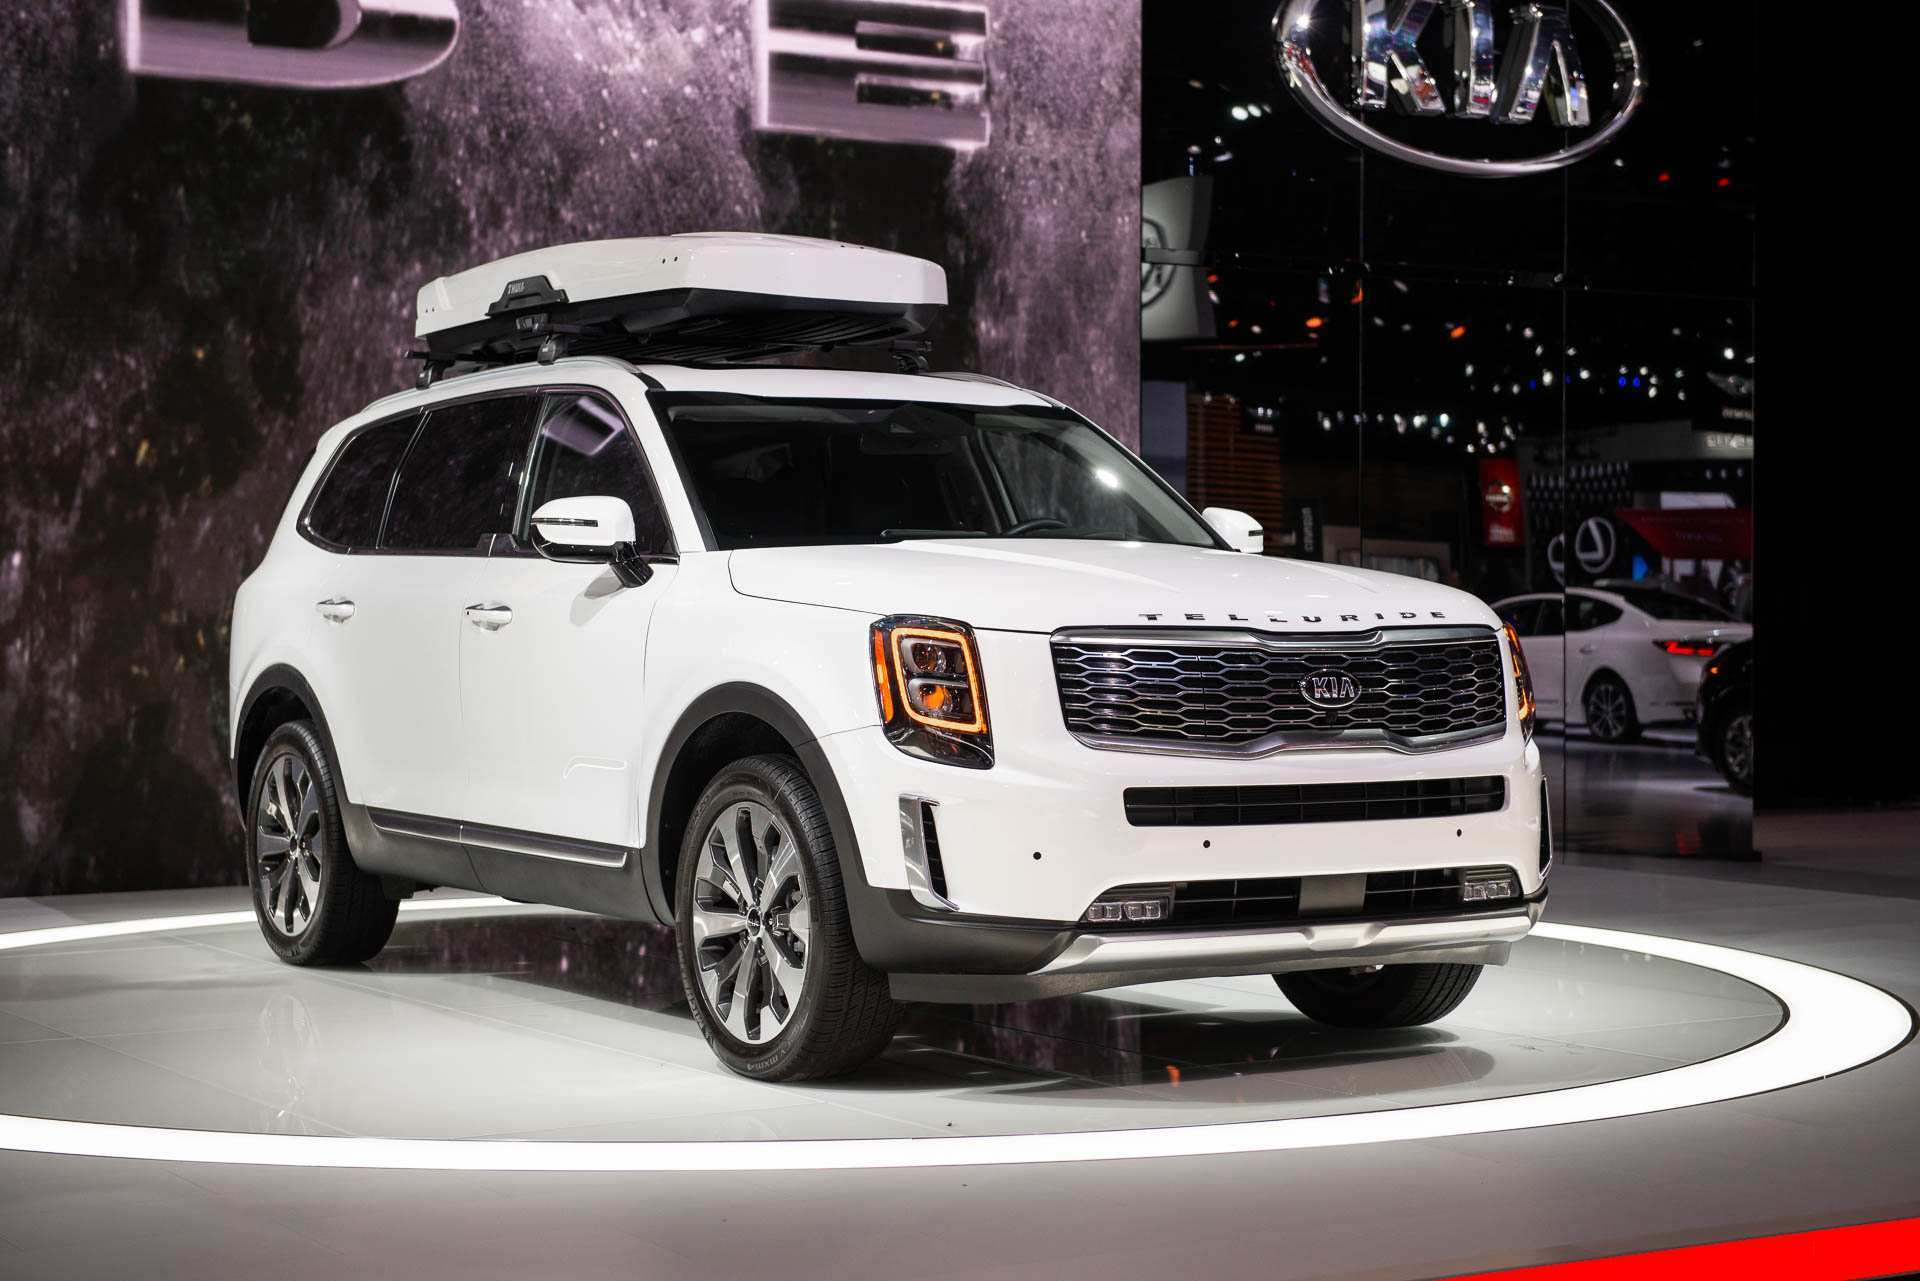 37 A Kia New Suv 2020 Price Release